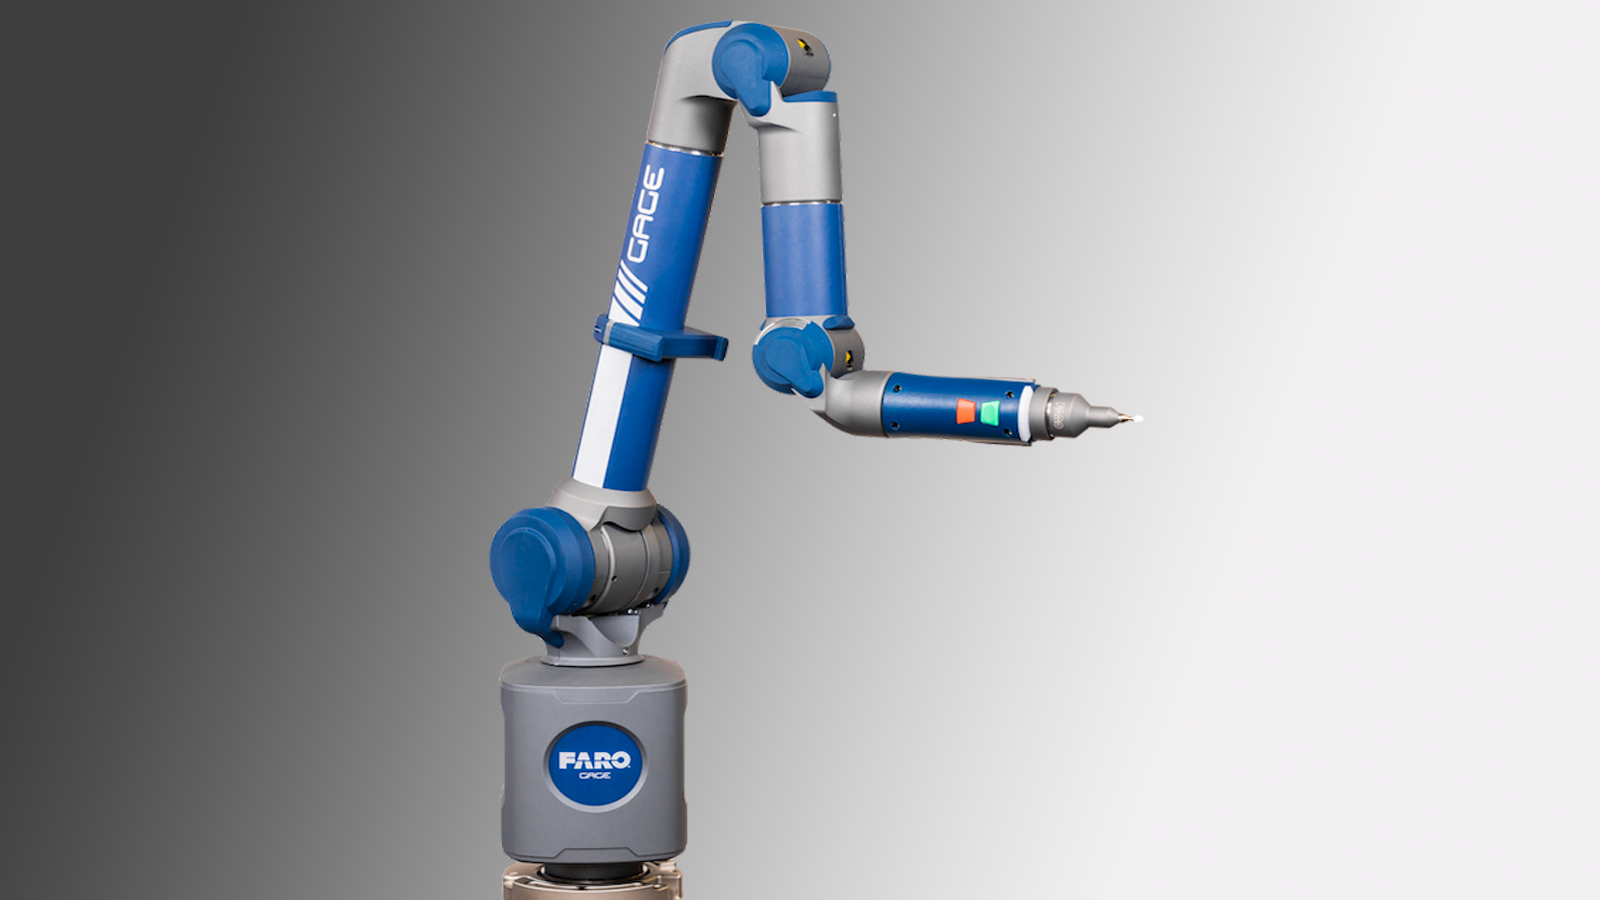 Faro Gage arm is high accuracy